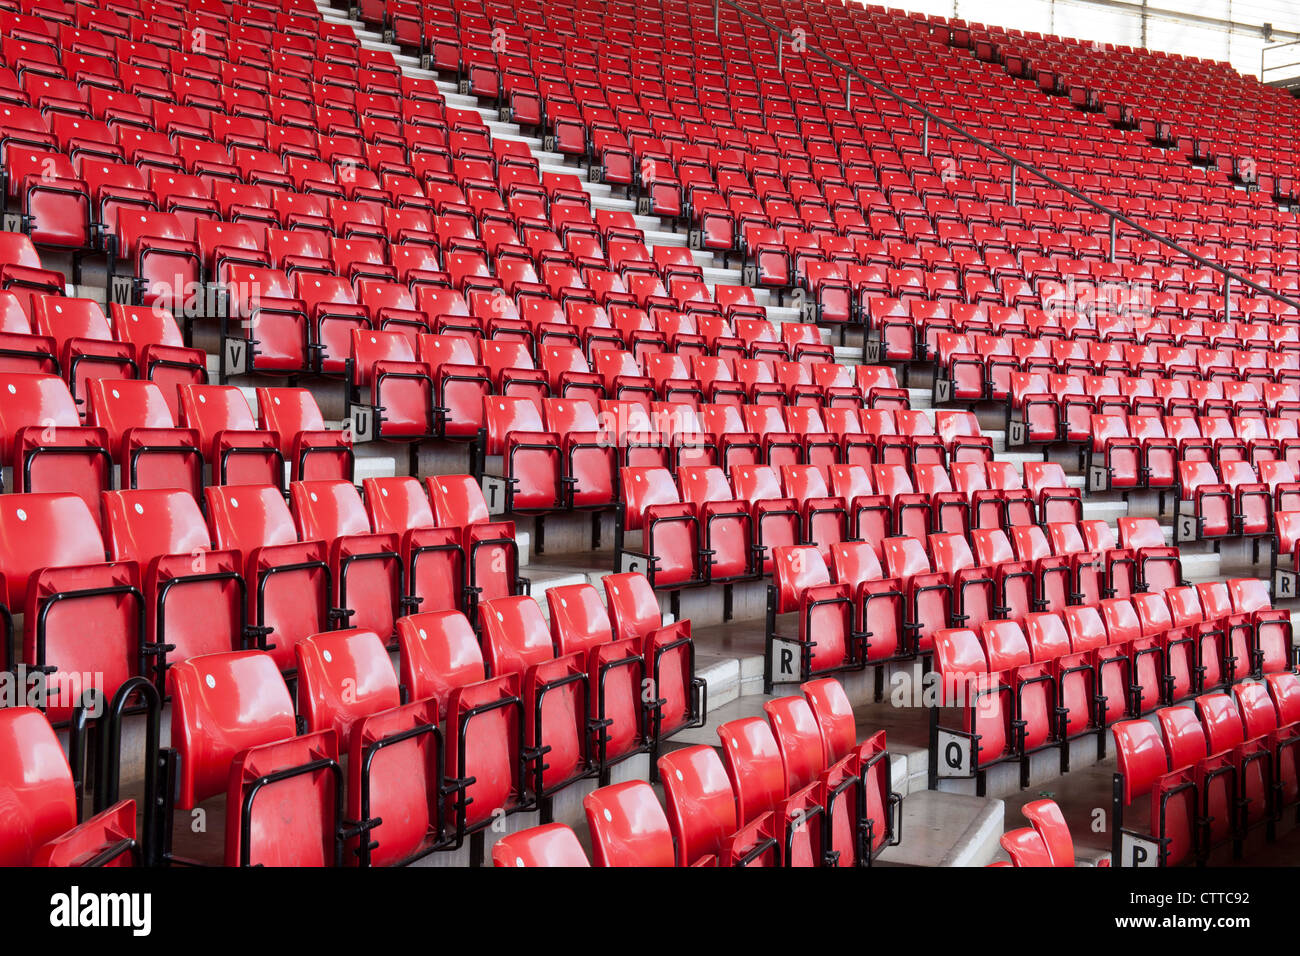 Friends Provident St Mary's Football Stadium, home of Southampton Football Club, At Mary's, Southampton, - Stock Image